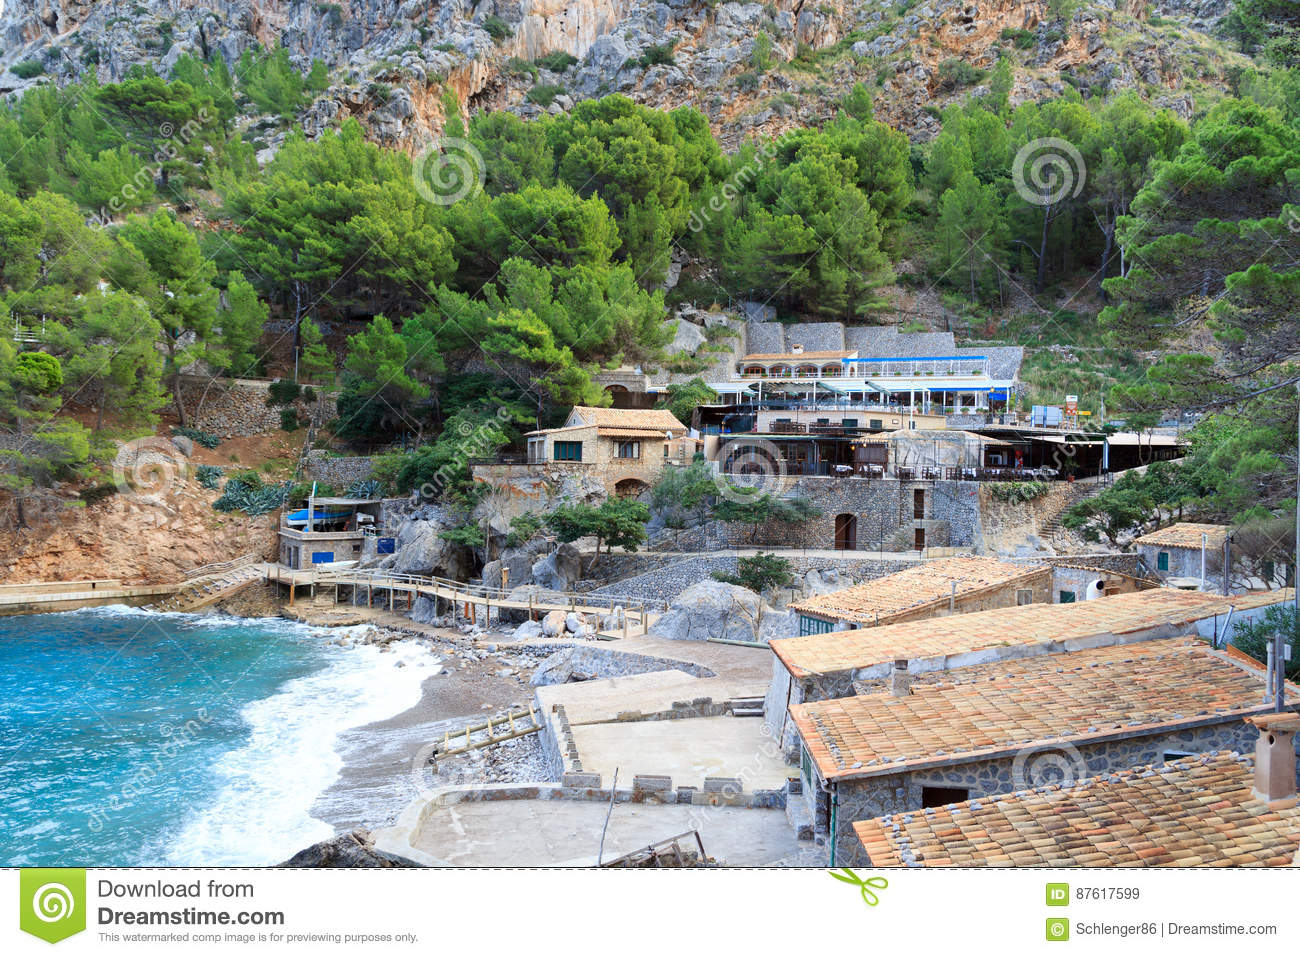 Hotels en Restaurants in Port DE Sa Calobra, Majorca